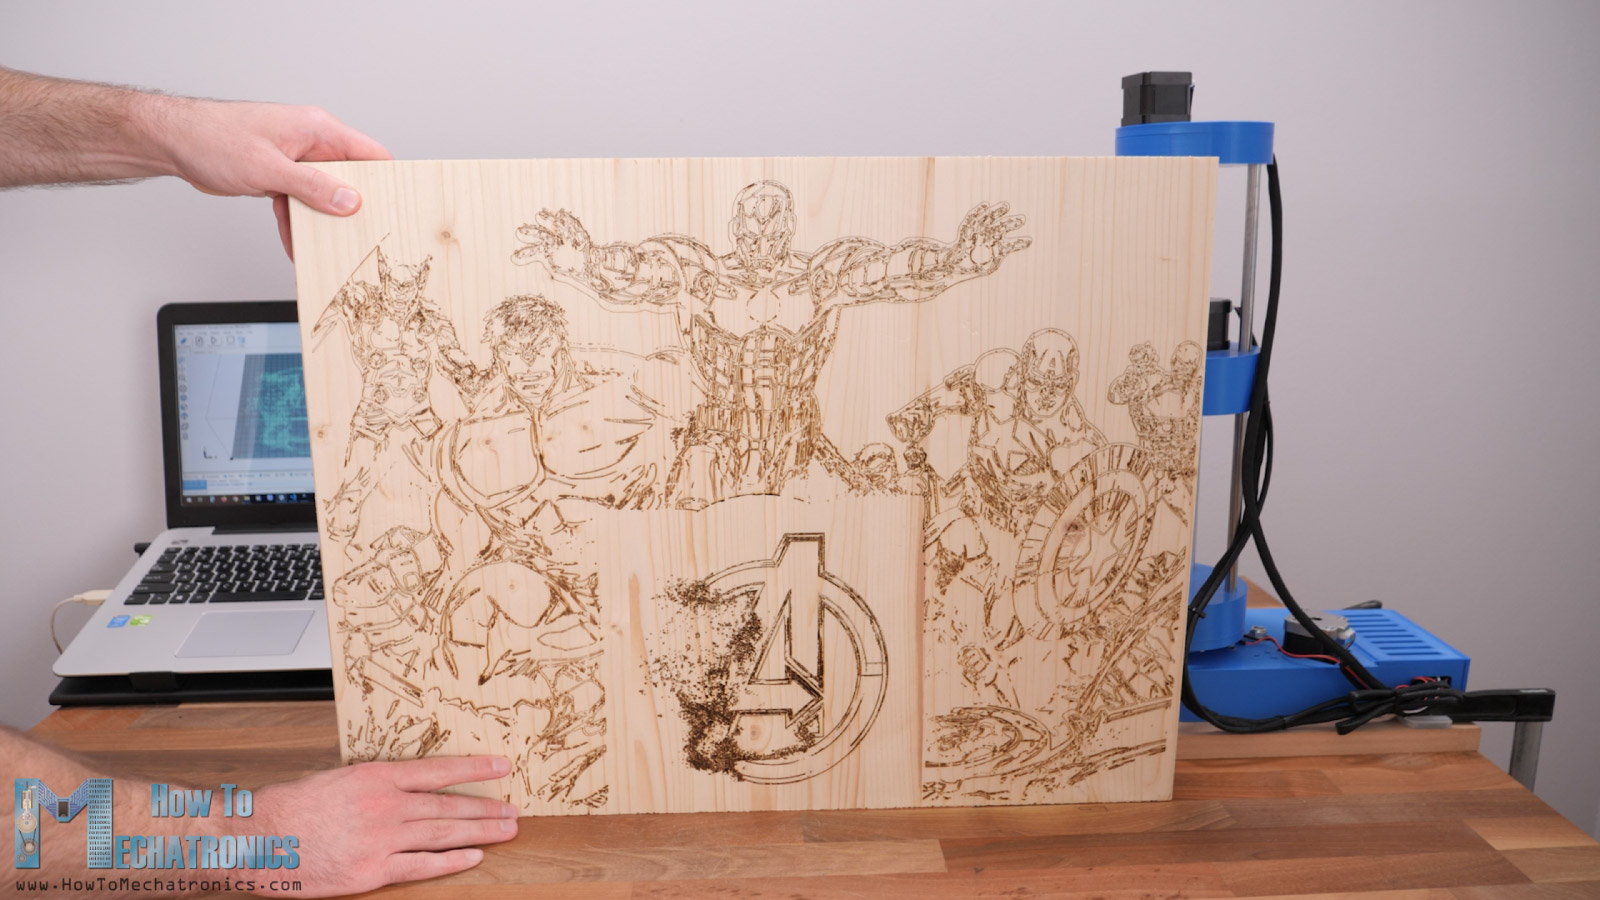 Laser Engraving huge Avengers drawing on 600 x 400 mm wooden board